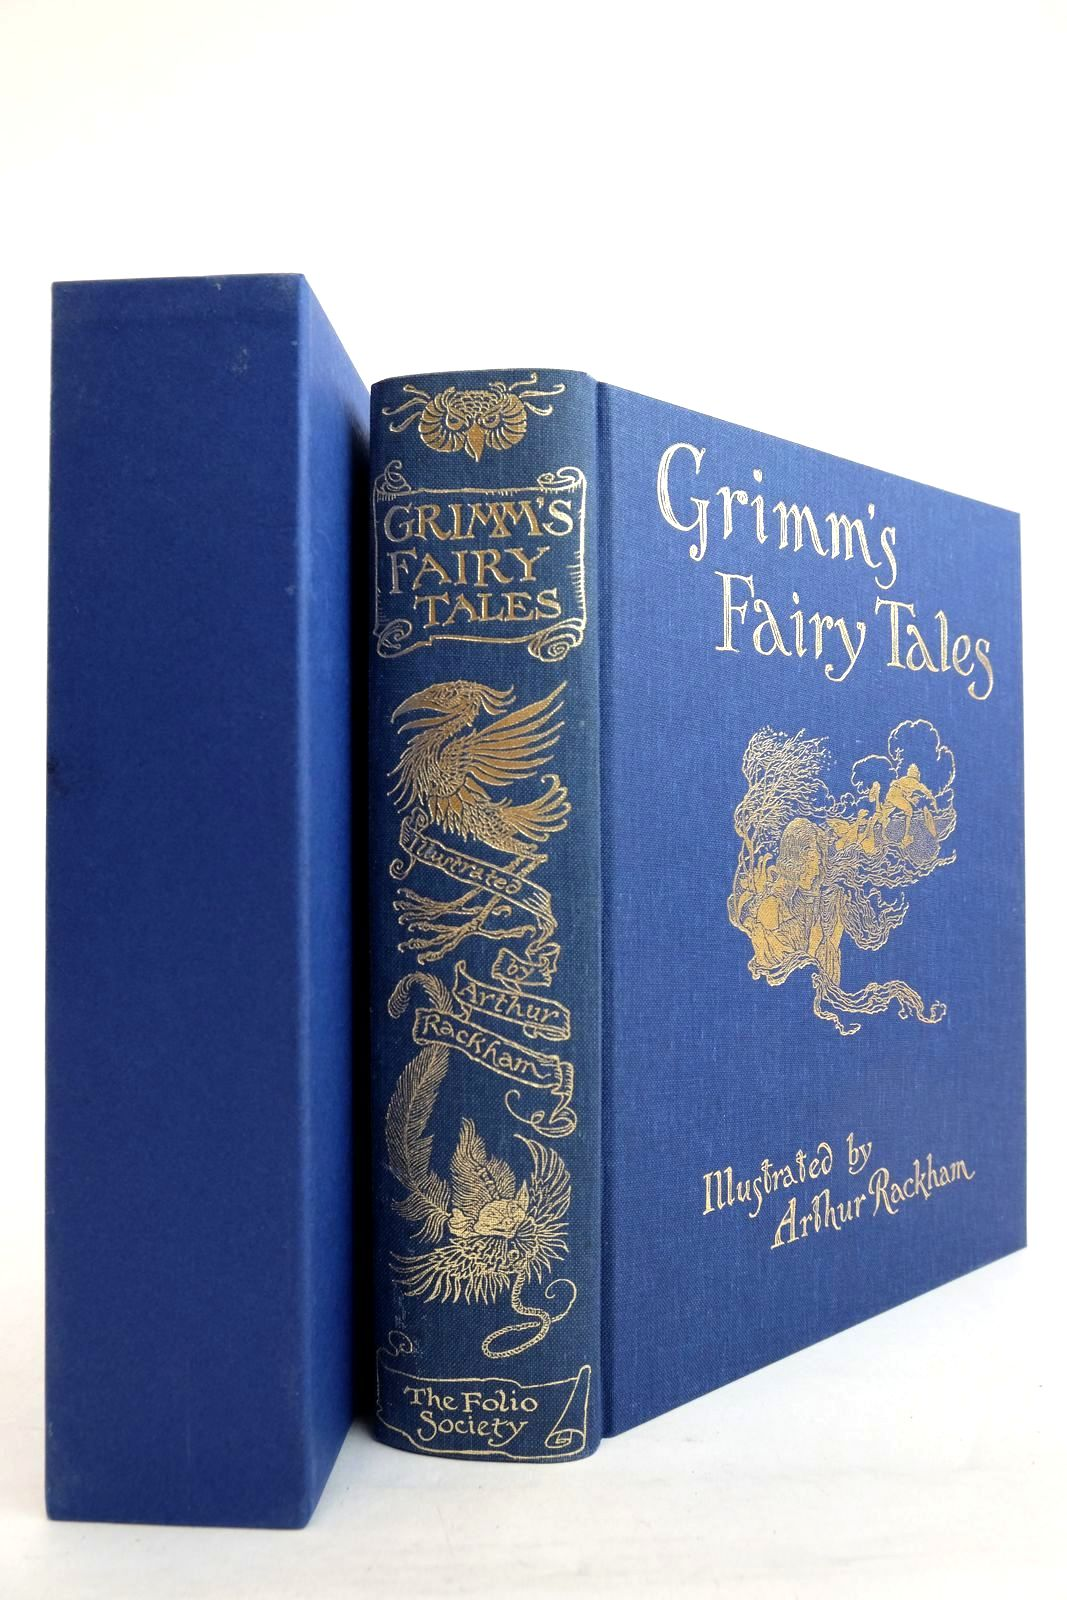 Photo of THE FAIRY TALES OF THE BROTHERS GRIMM written by Grimm, Brothers illustrated by Rackham, Arthur published by Folio Society (STOCK CODE: 2134280)  for sale by Stella & Rose's Books